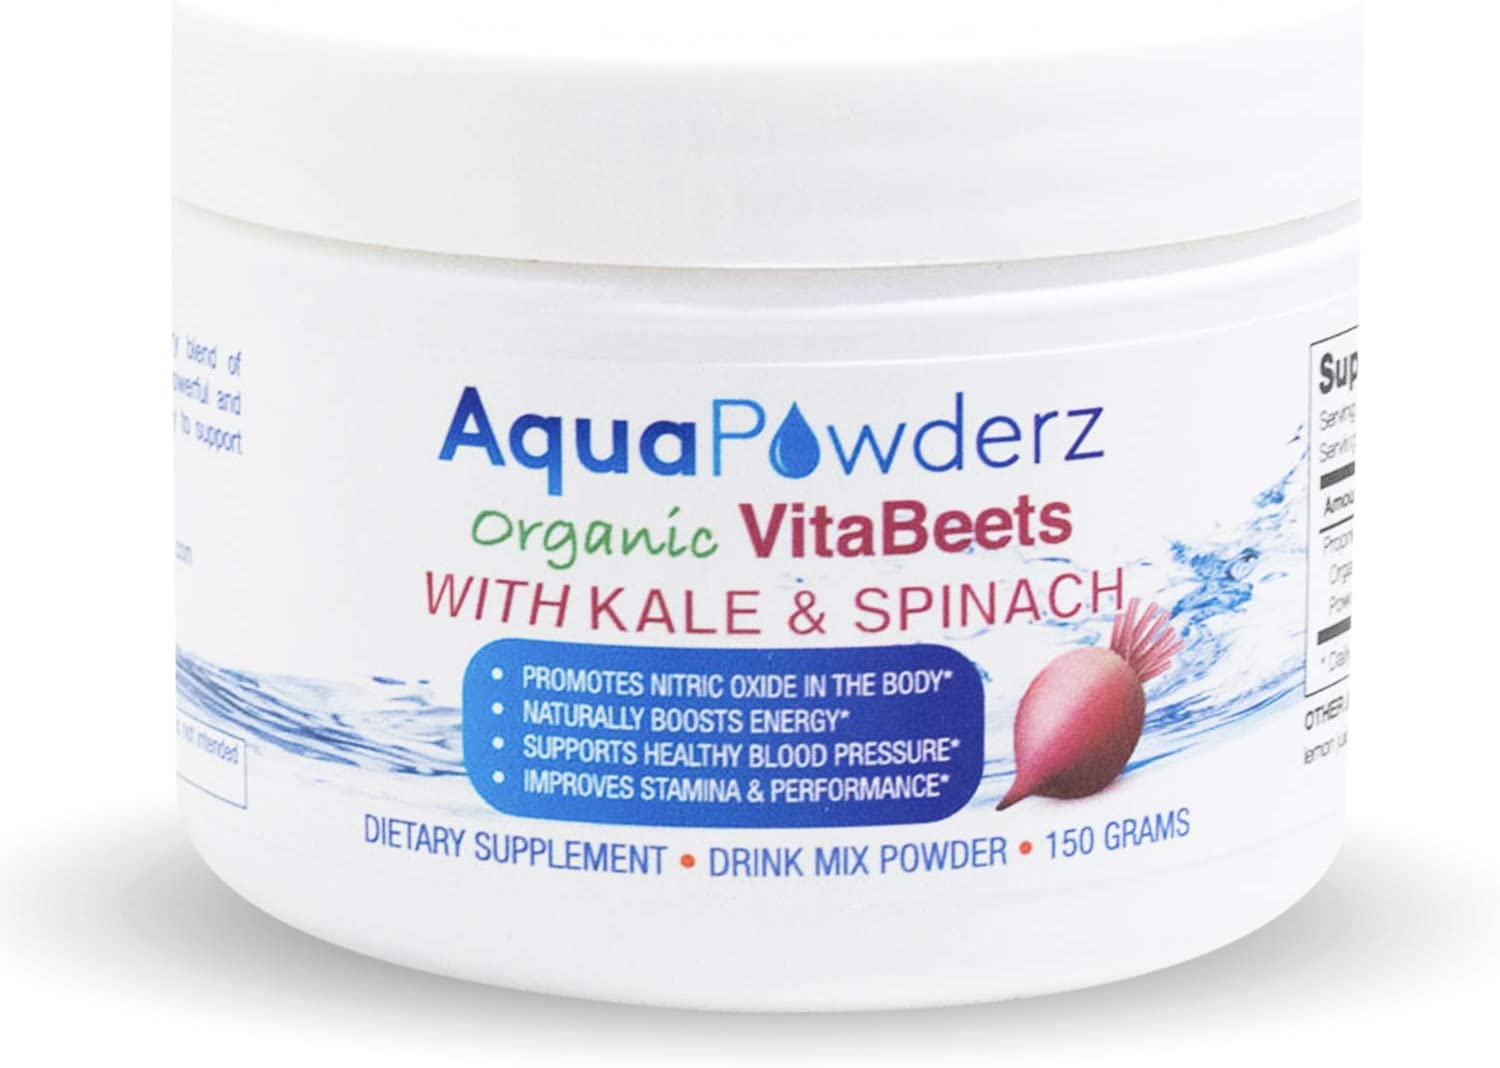 AquaPowderz Organic VitaBeets Powder| Beetroot Powder with Highly Nutritious Kale & Spinach Powder |Promotes Nitric Oxide for Heart Health| Energy |Stamina & Performance |Non GMO | USA |5.29 oz